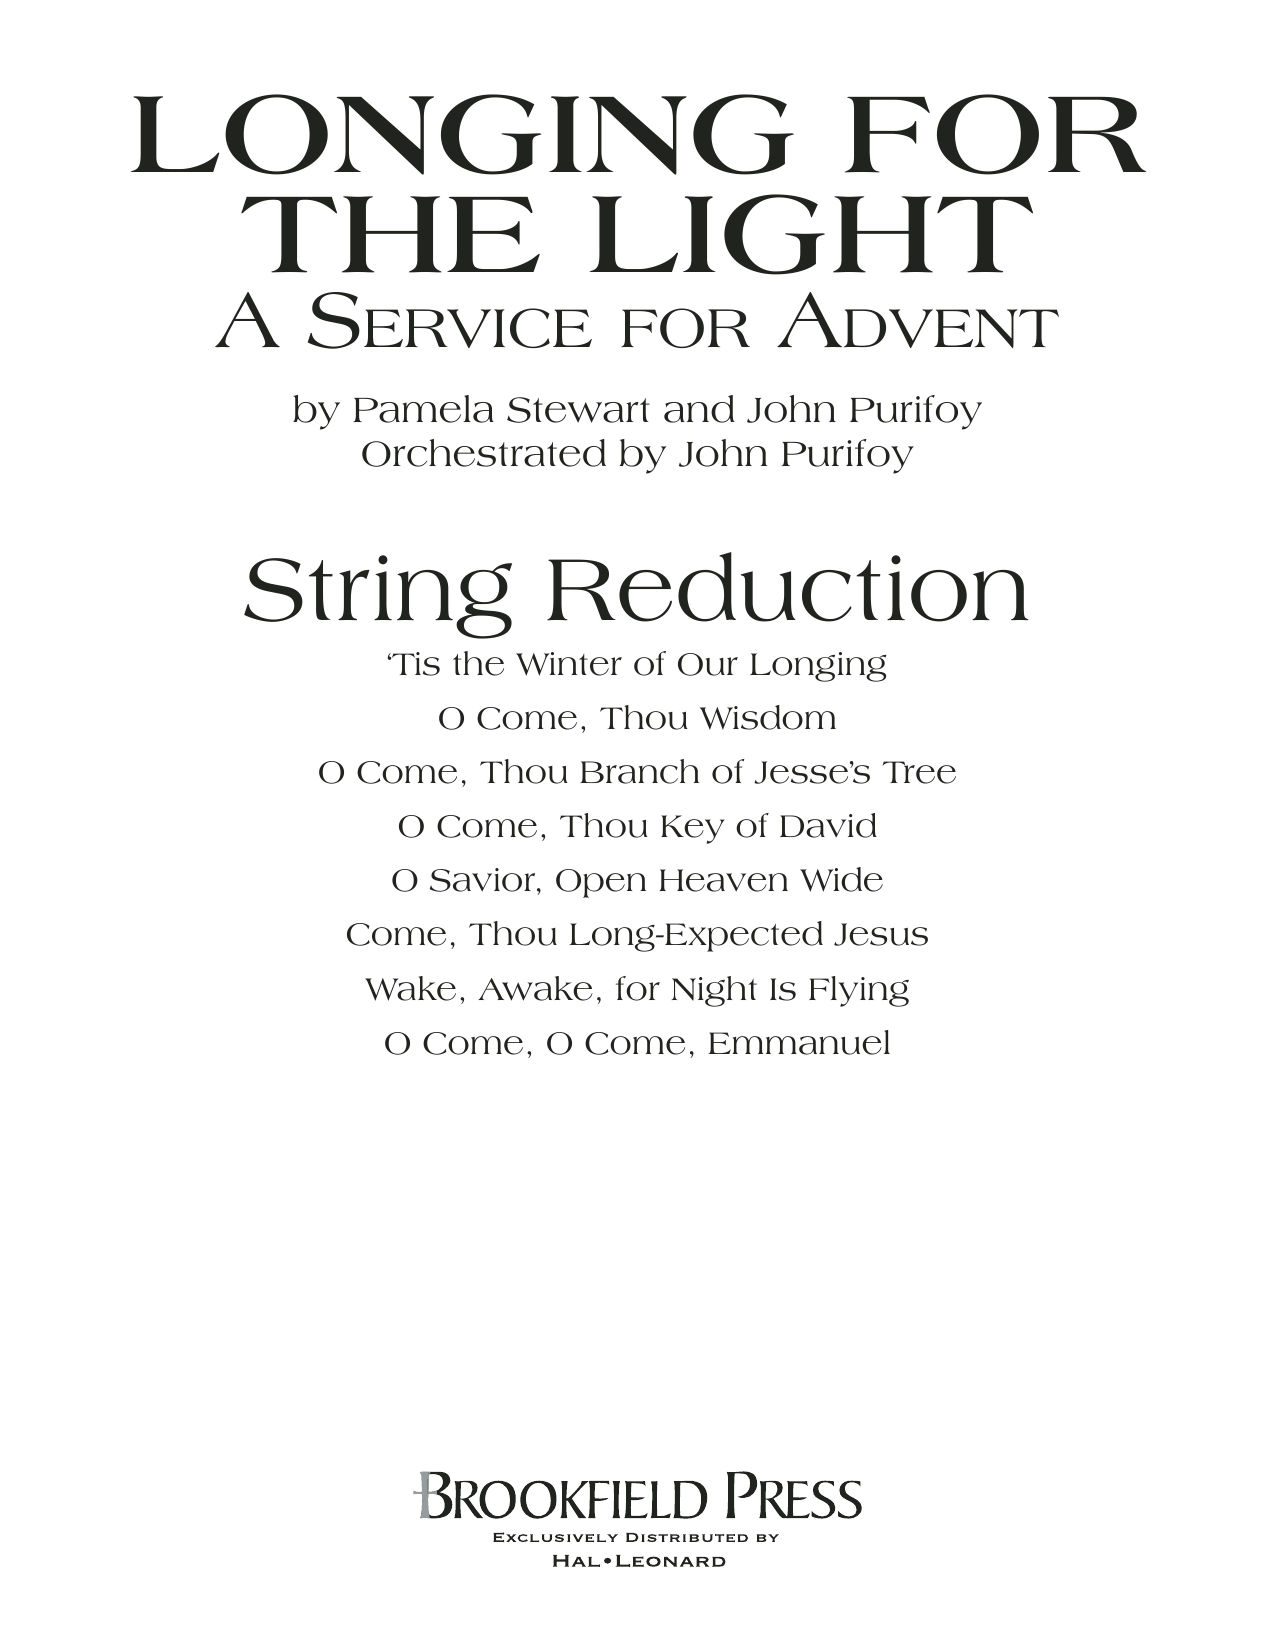 Longing For The Light (A Service For Advent) - Keyboard String Reduction Sheet Music